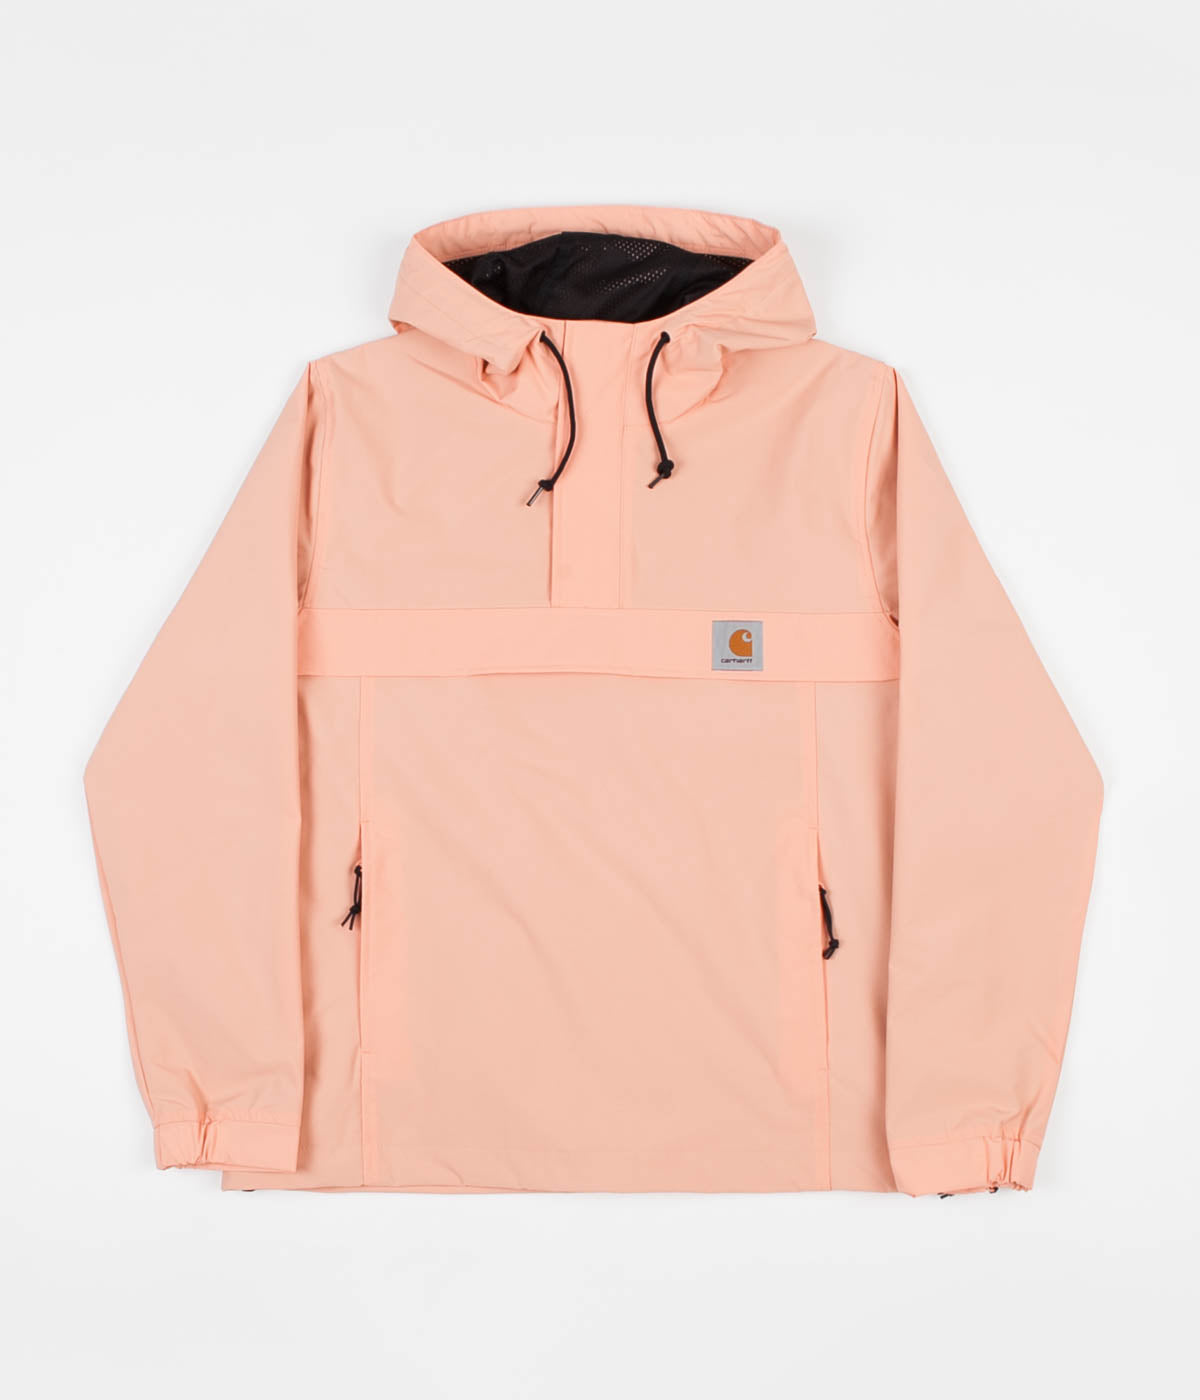 arriving free delivery buying now Carhartt Nimbus (Summer) Pullover Jacket - Peach | Flatspot